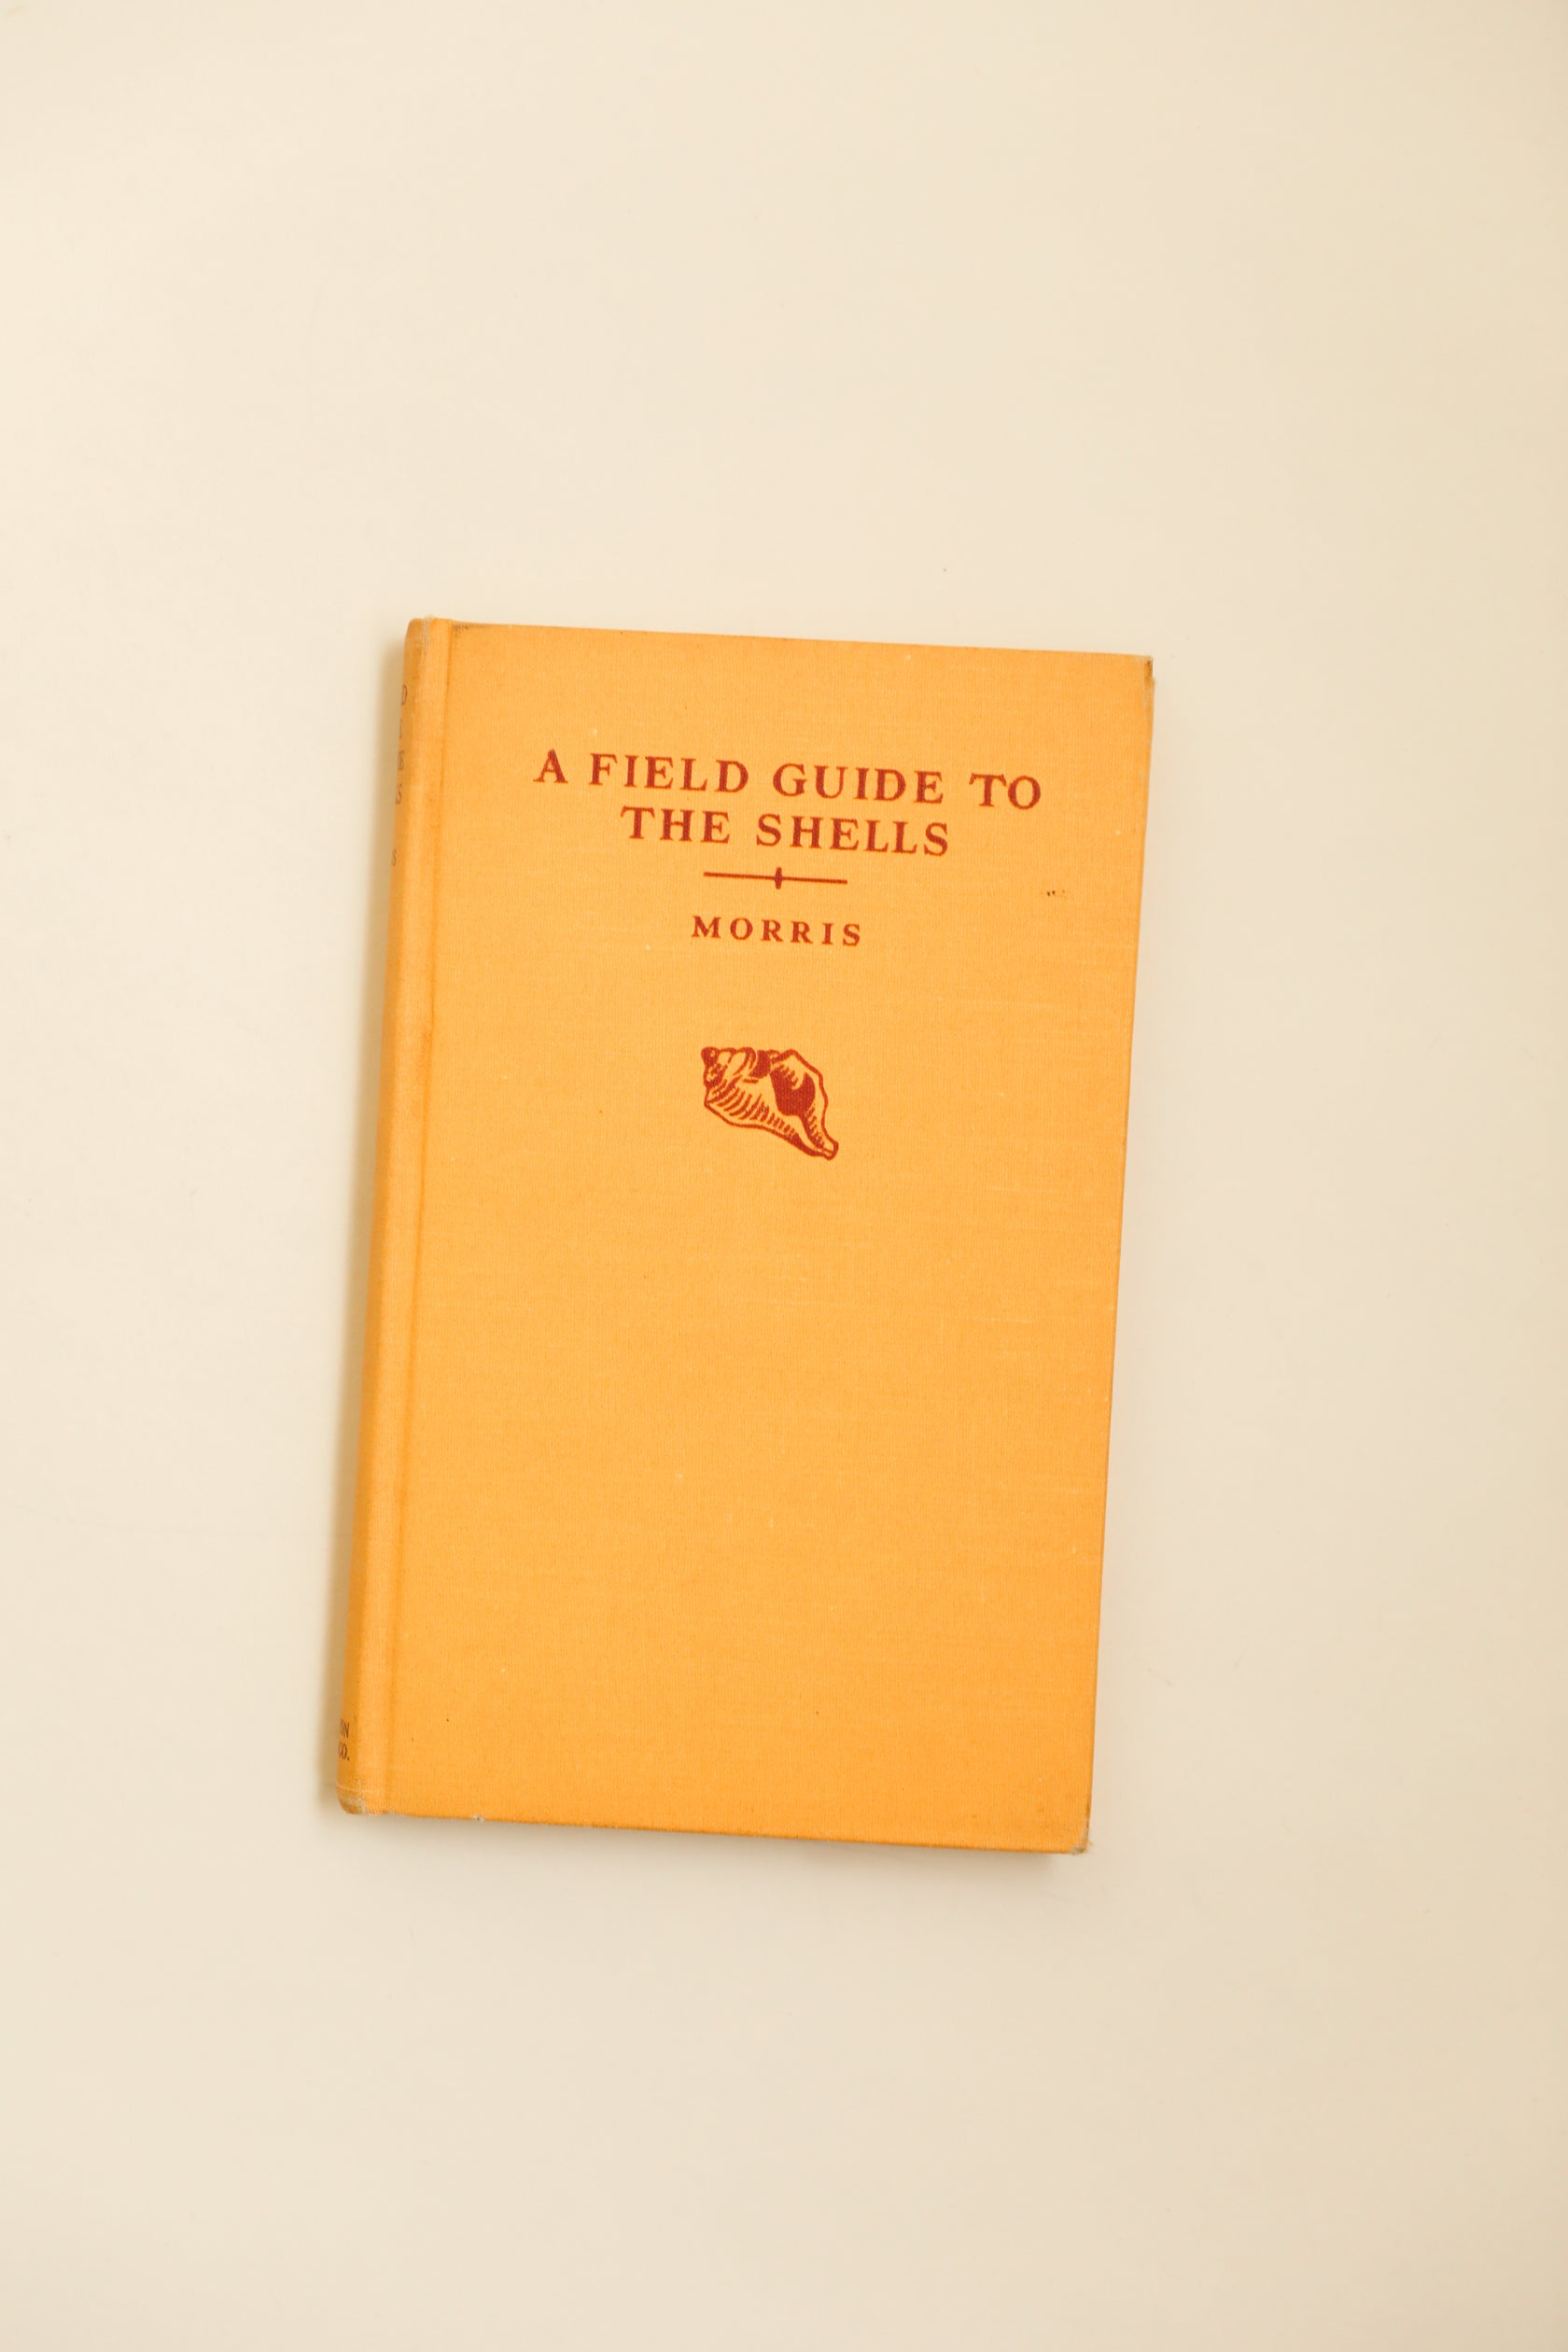 A Field Guide to the Shells by Percy Morris